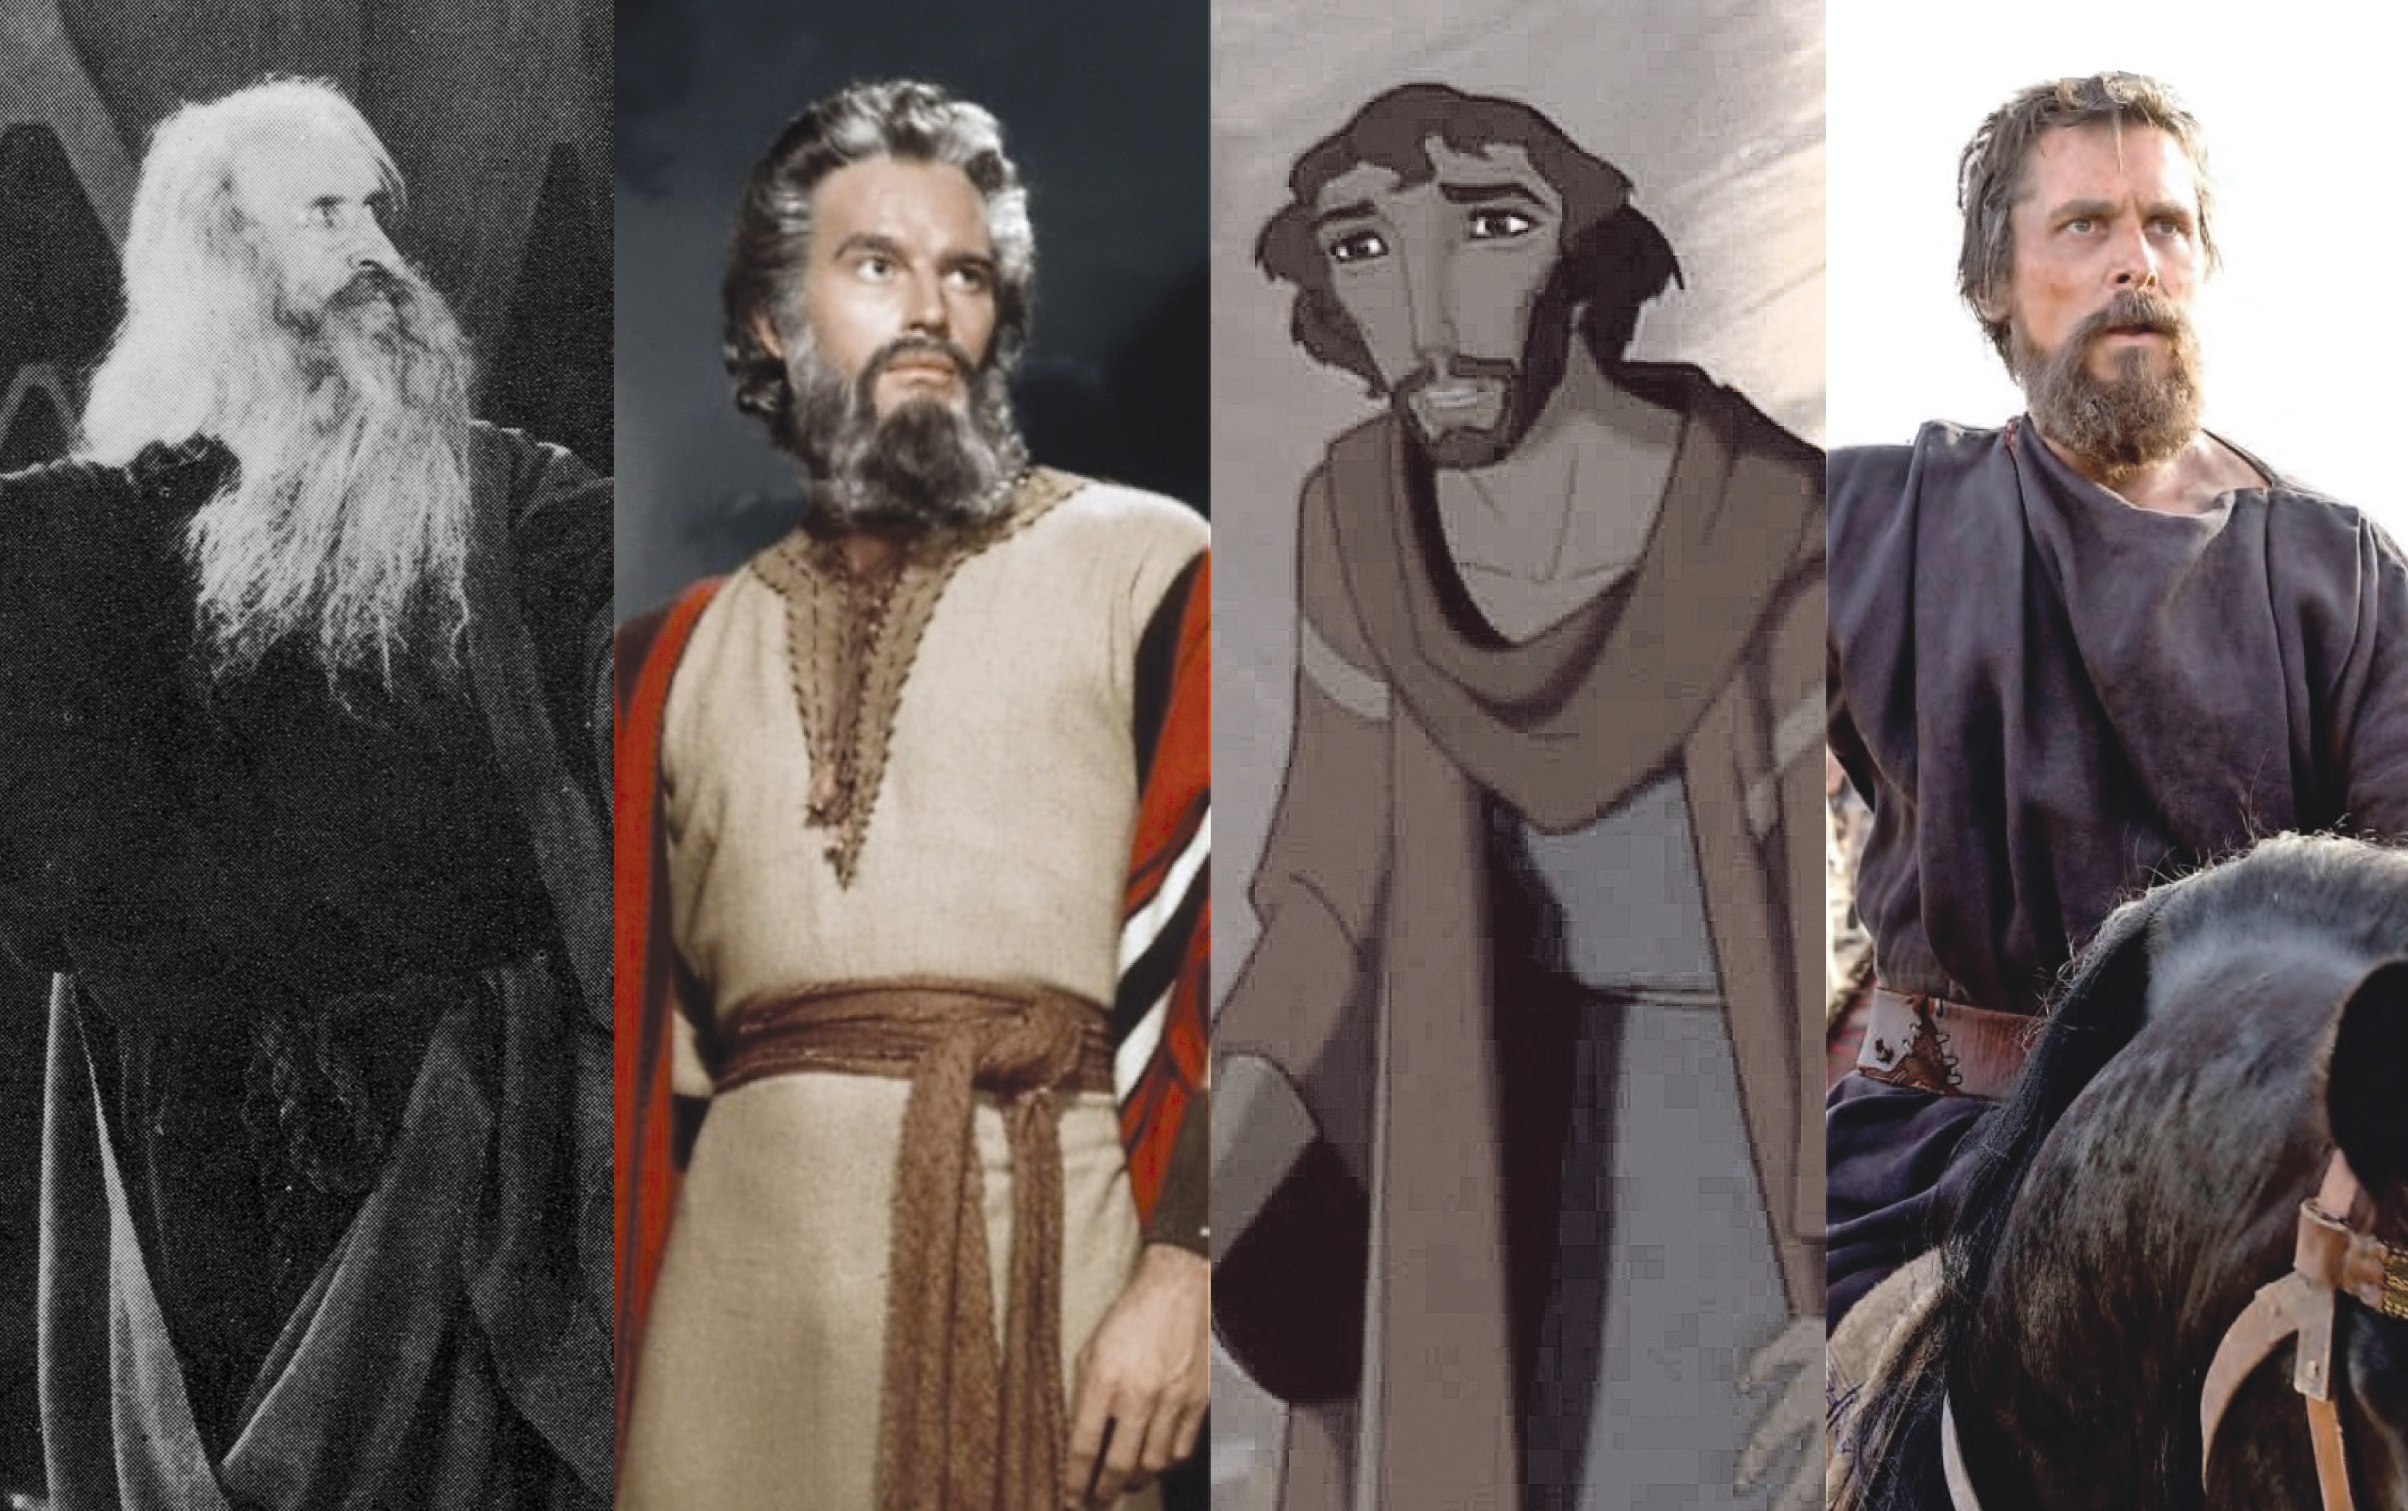 """Click photo to download. Caption: From left to right, Theodore Roberts in """"The Ten Commandments"""" (1923), Charlton Heston in """"The Ten Commandments"""" (1956), Moses voiced by Val Kilmer in """"The Prince of Egypt"""" (1998), and Christian Bale in """"Exodus: Gods and Kings"""" (2014). Credits (left to right): Paramount, Paramount, DreamWorks, 20th Century Fox. Photo illustration by Marshall Weiss."""